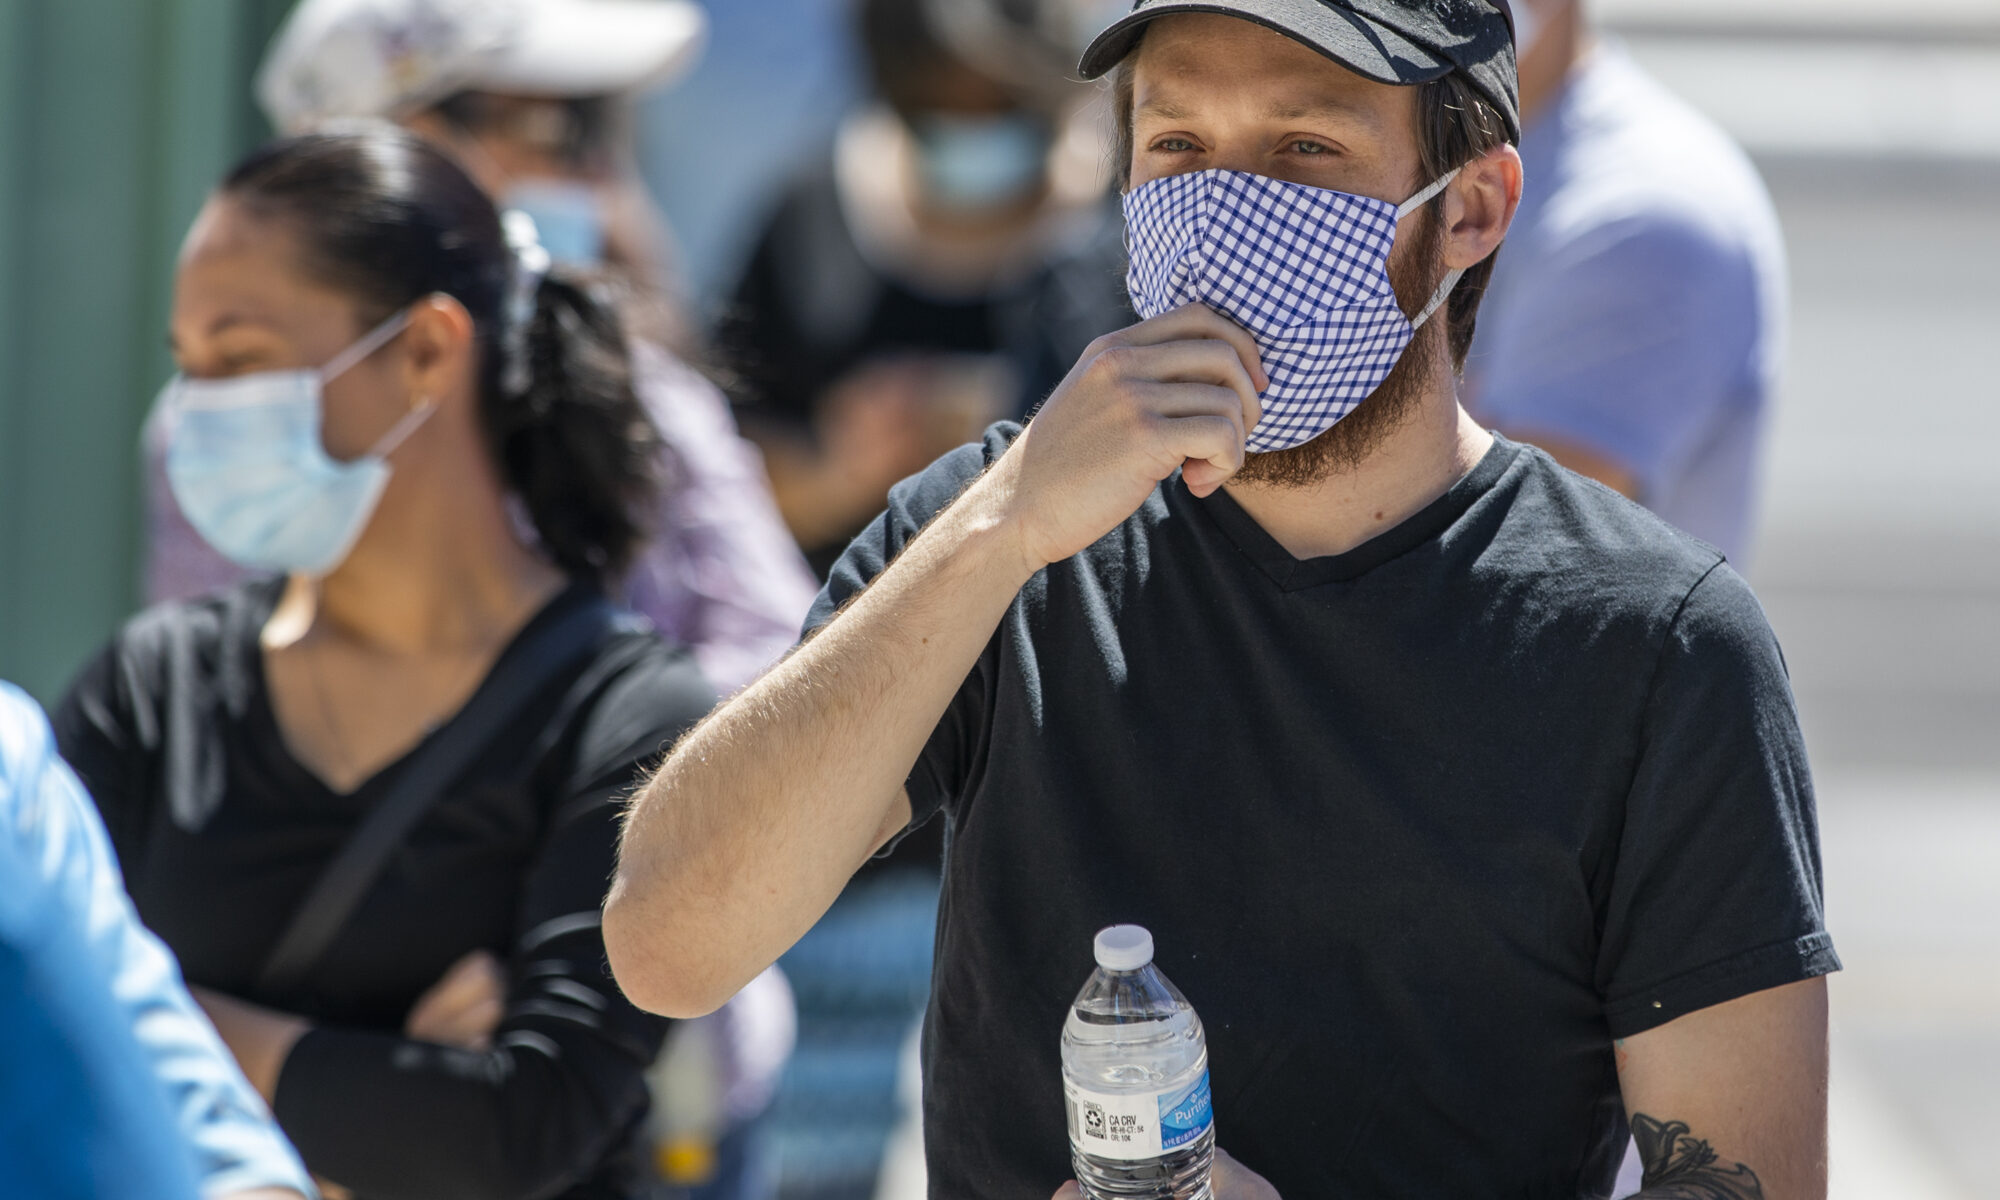 A man pulls at his mask in line